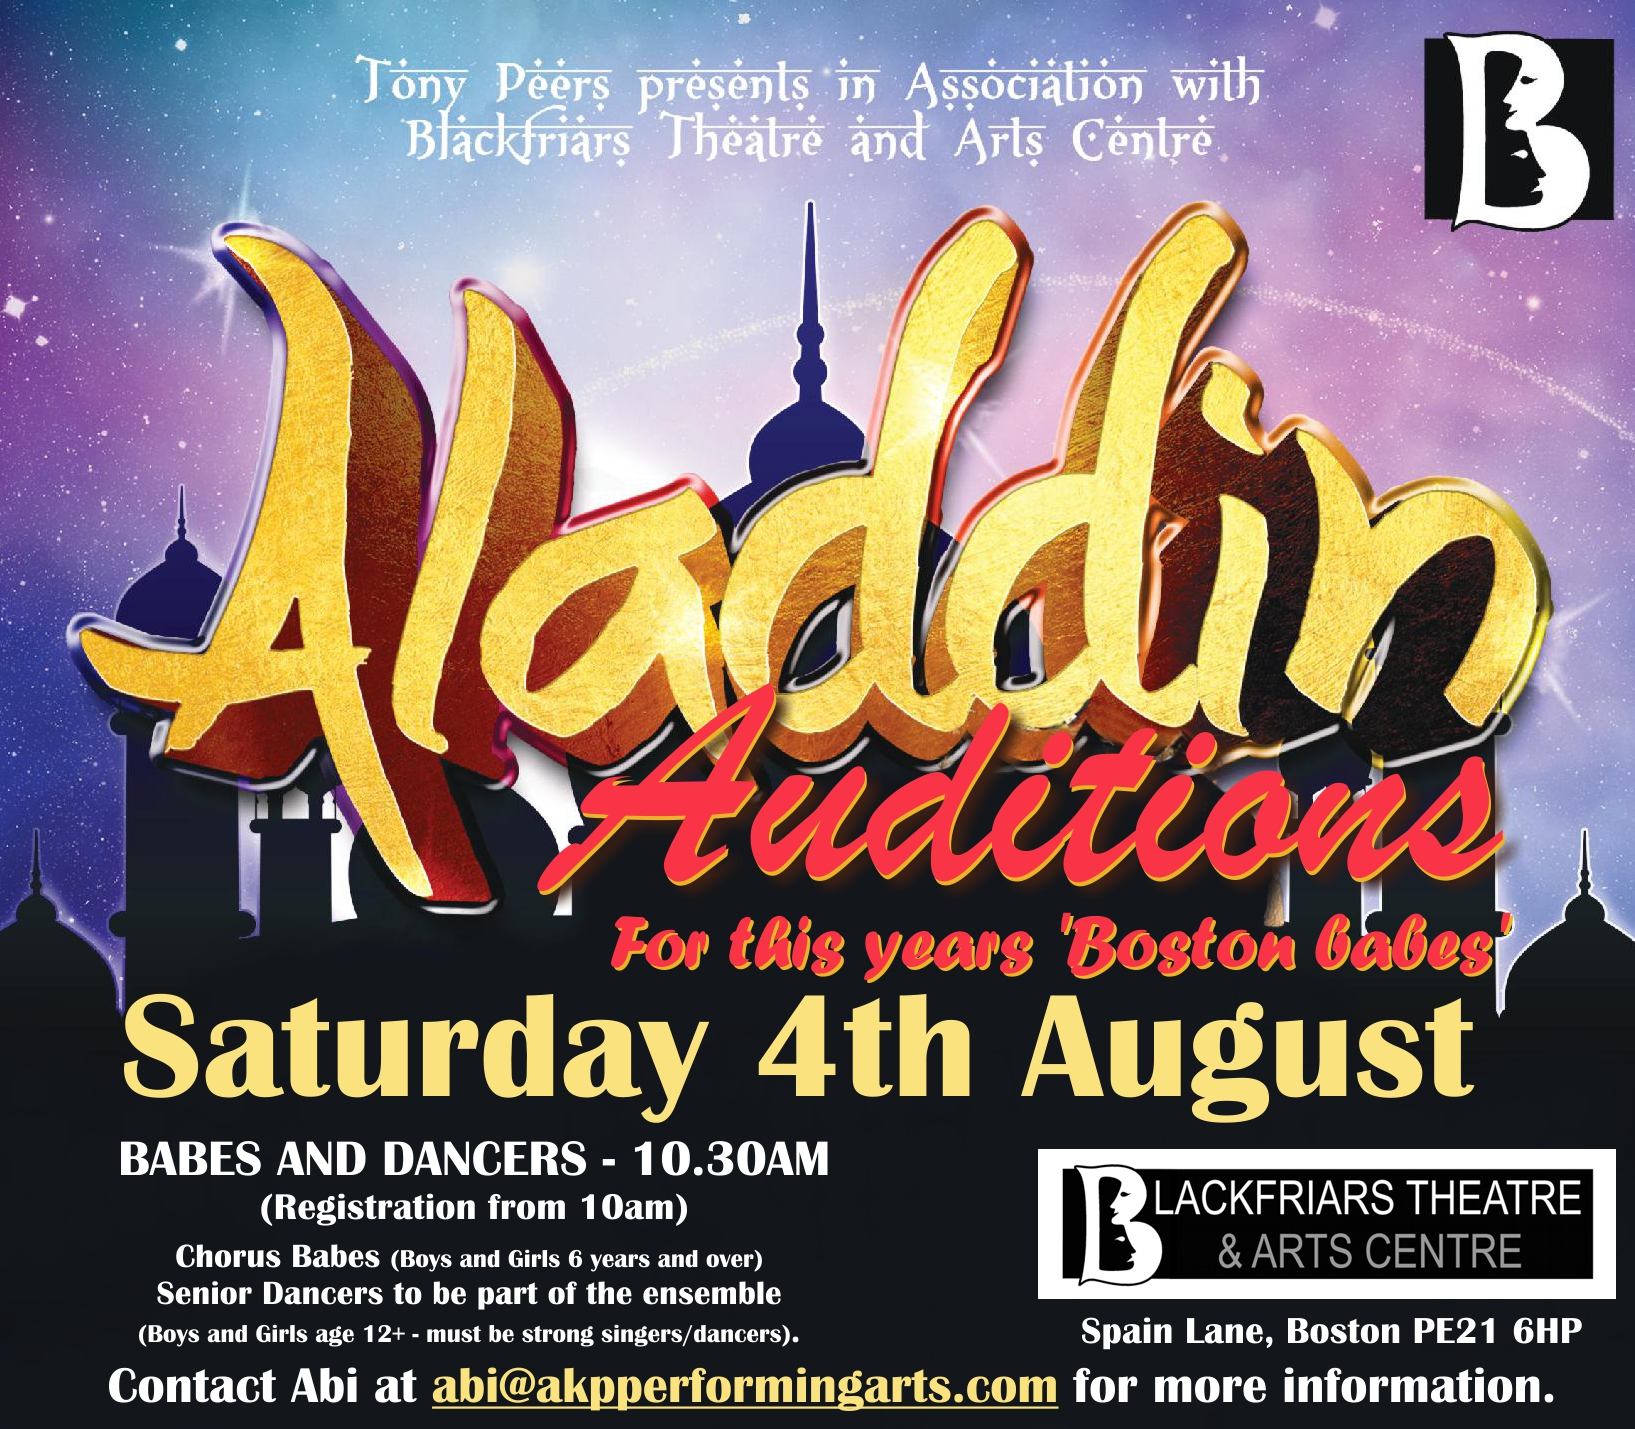 Aladdin Auditions for Boston Babes taking place on Saturday 4th August